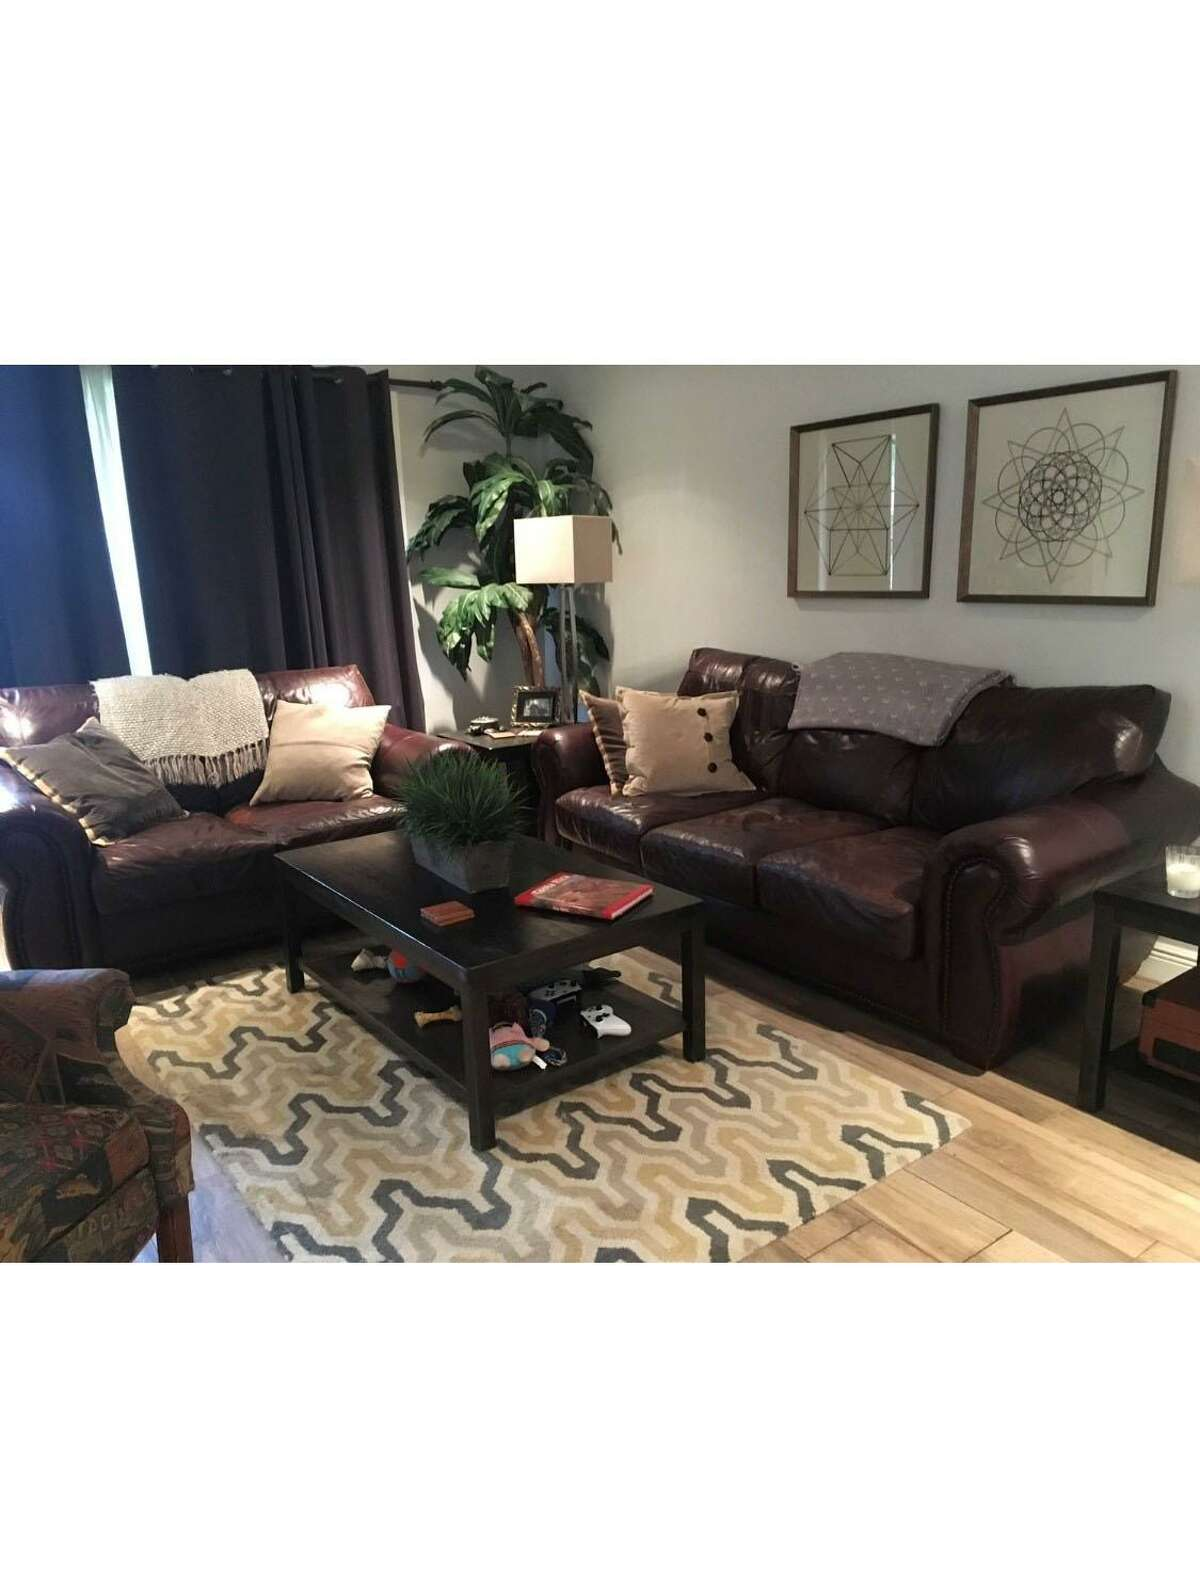 Before: Dobbs' living room featured dark leather sofas and dark accent tables. The accent rug was too small for the space.